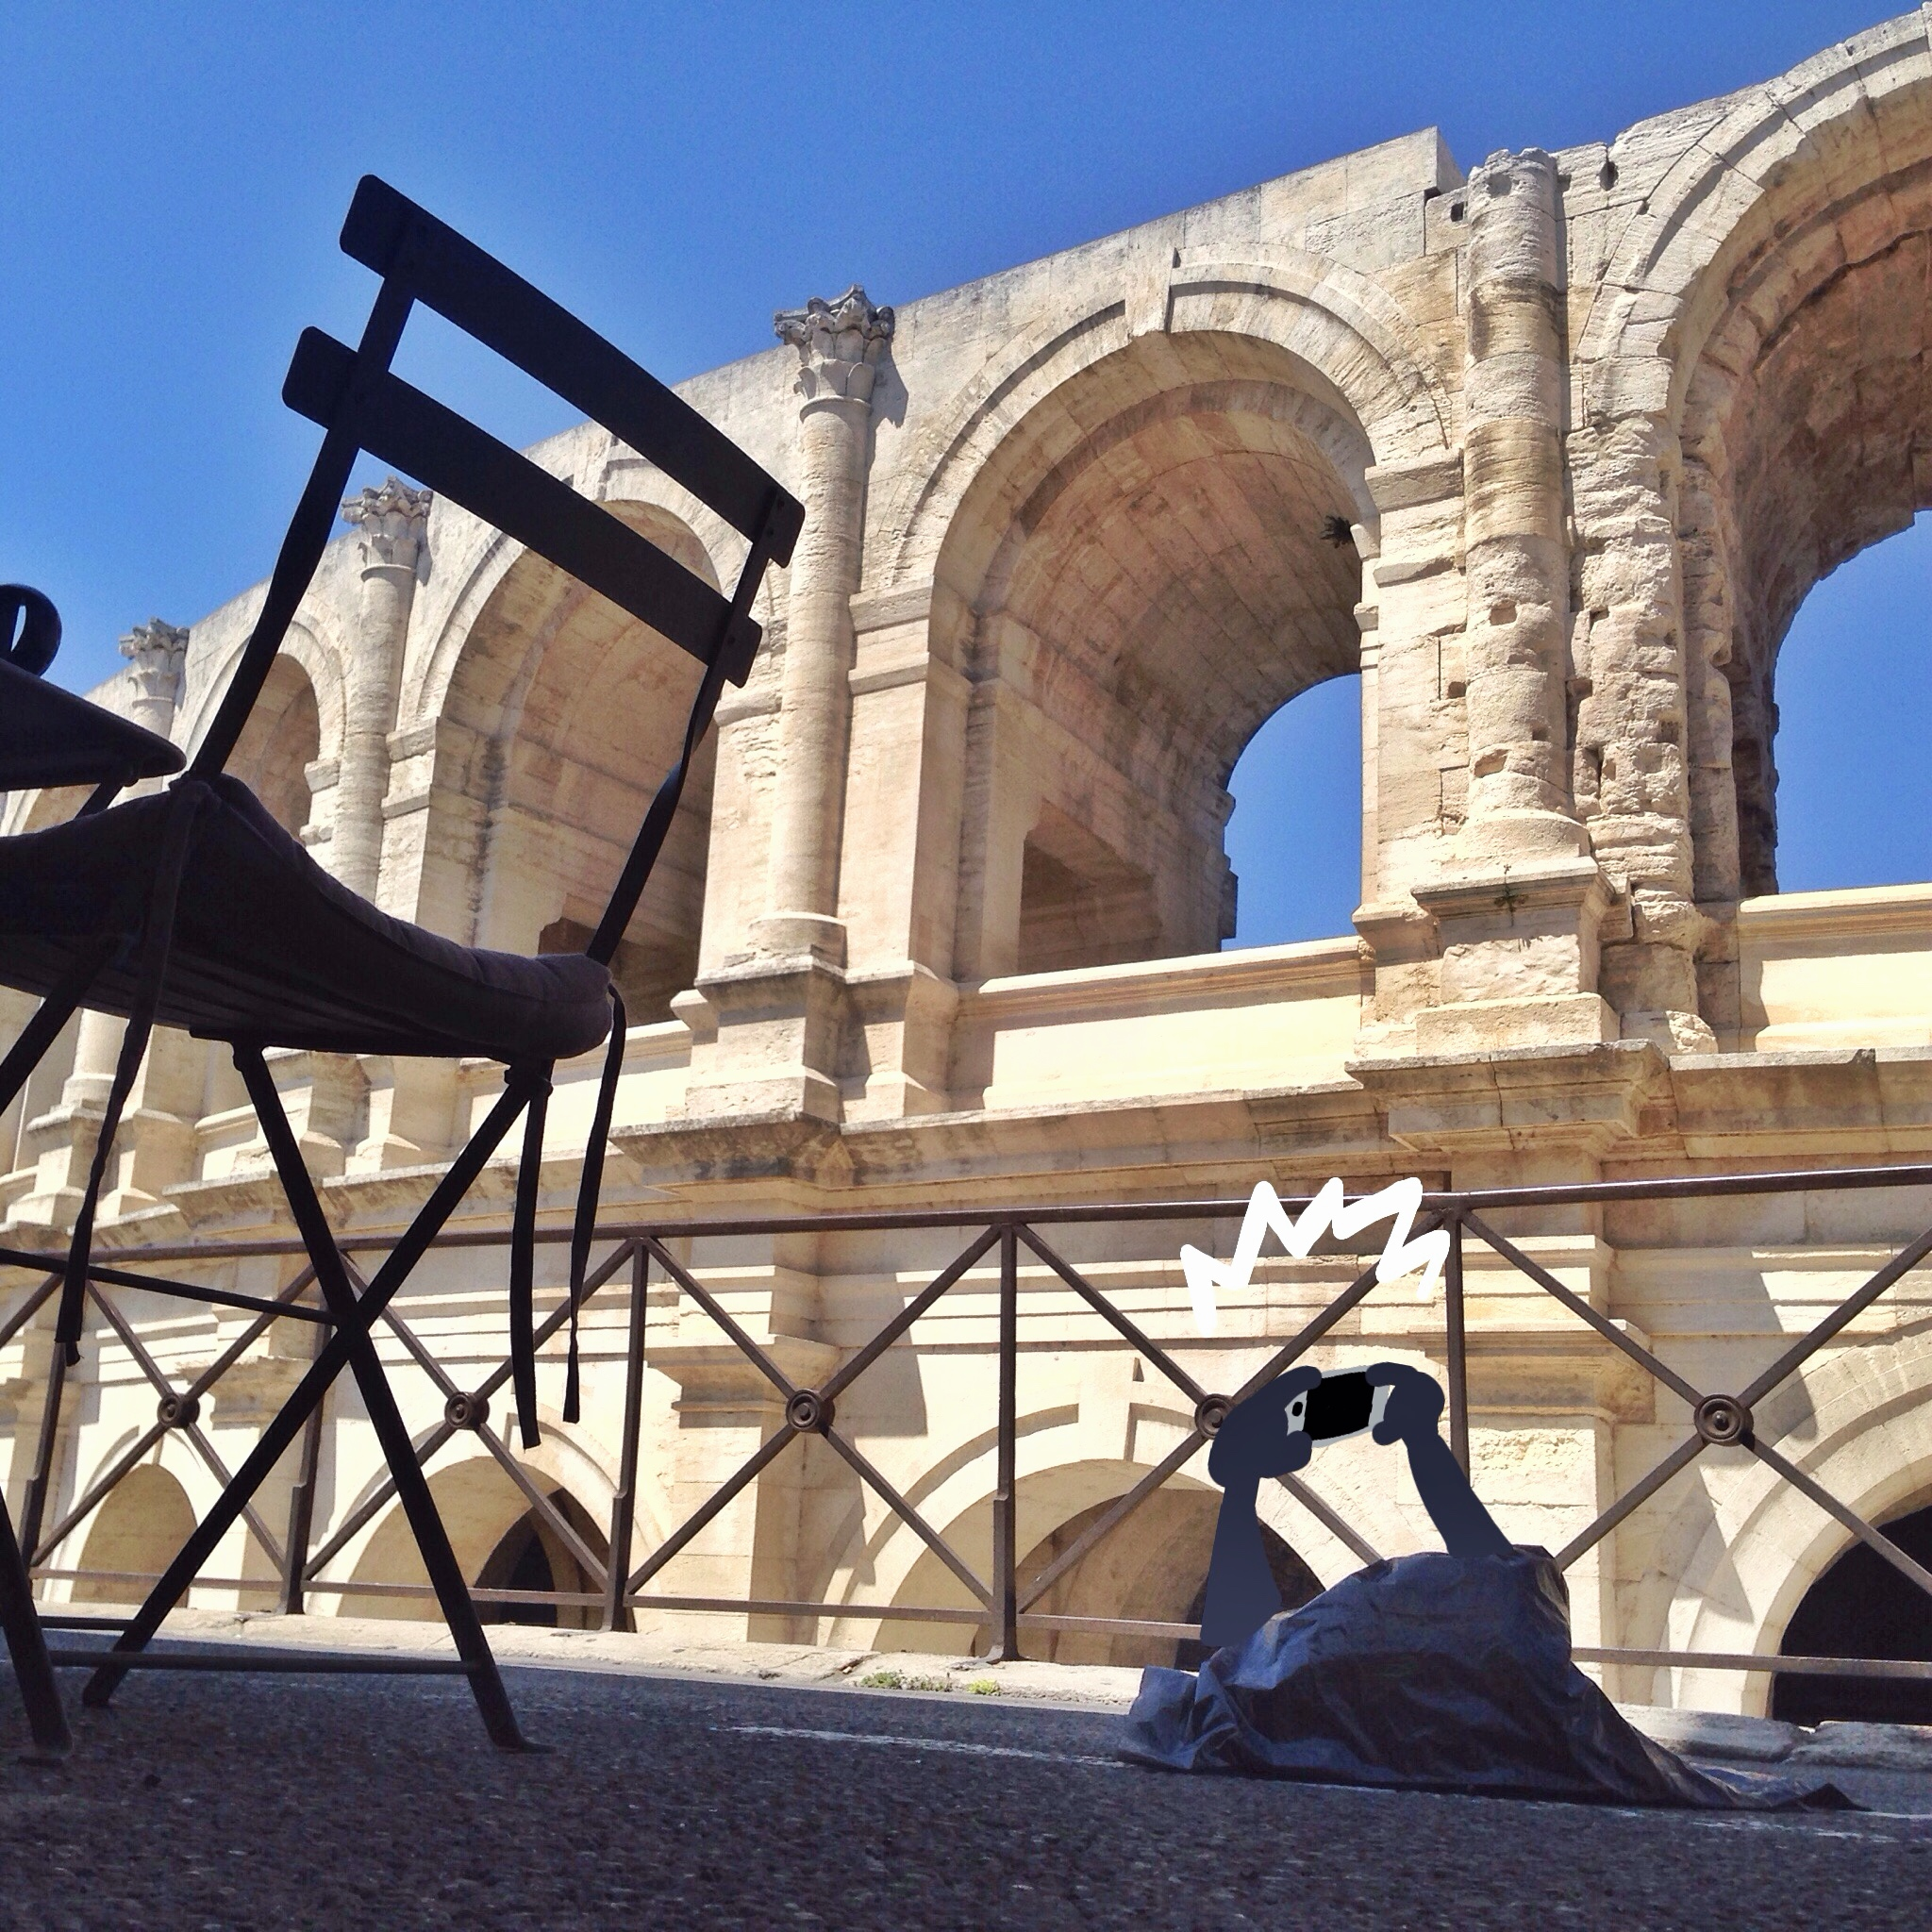 Tourism in Arles